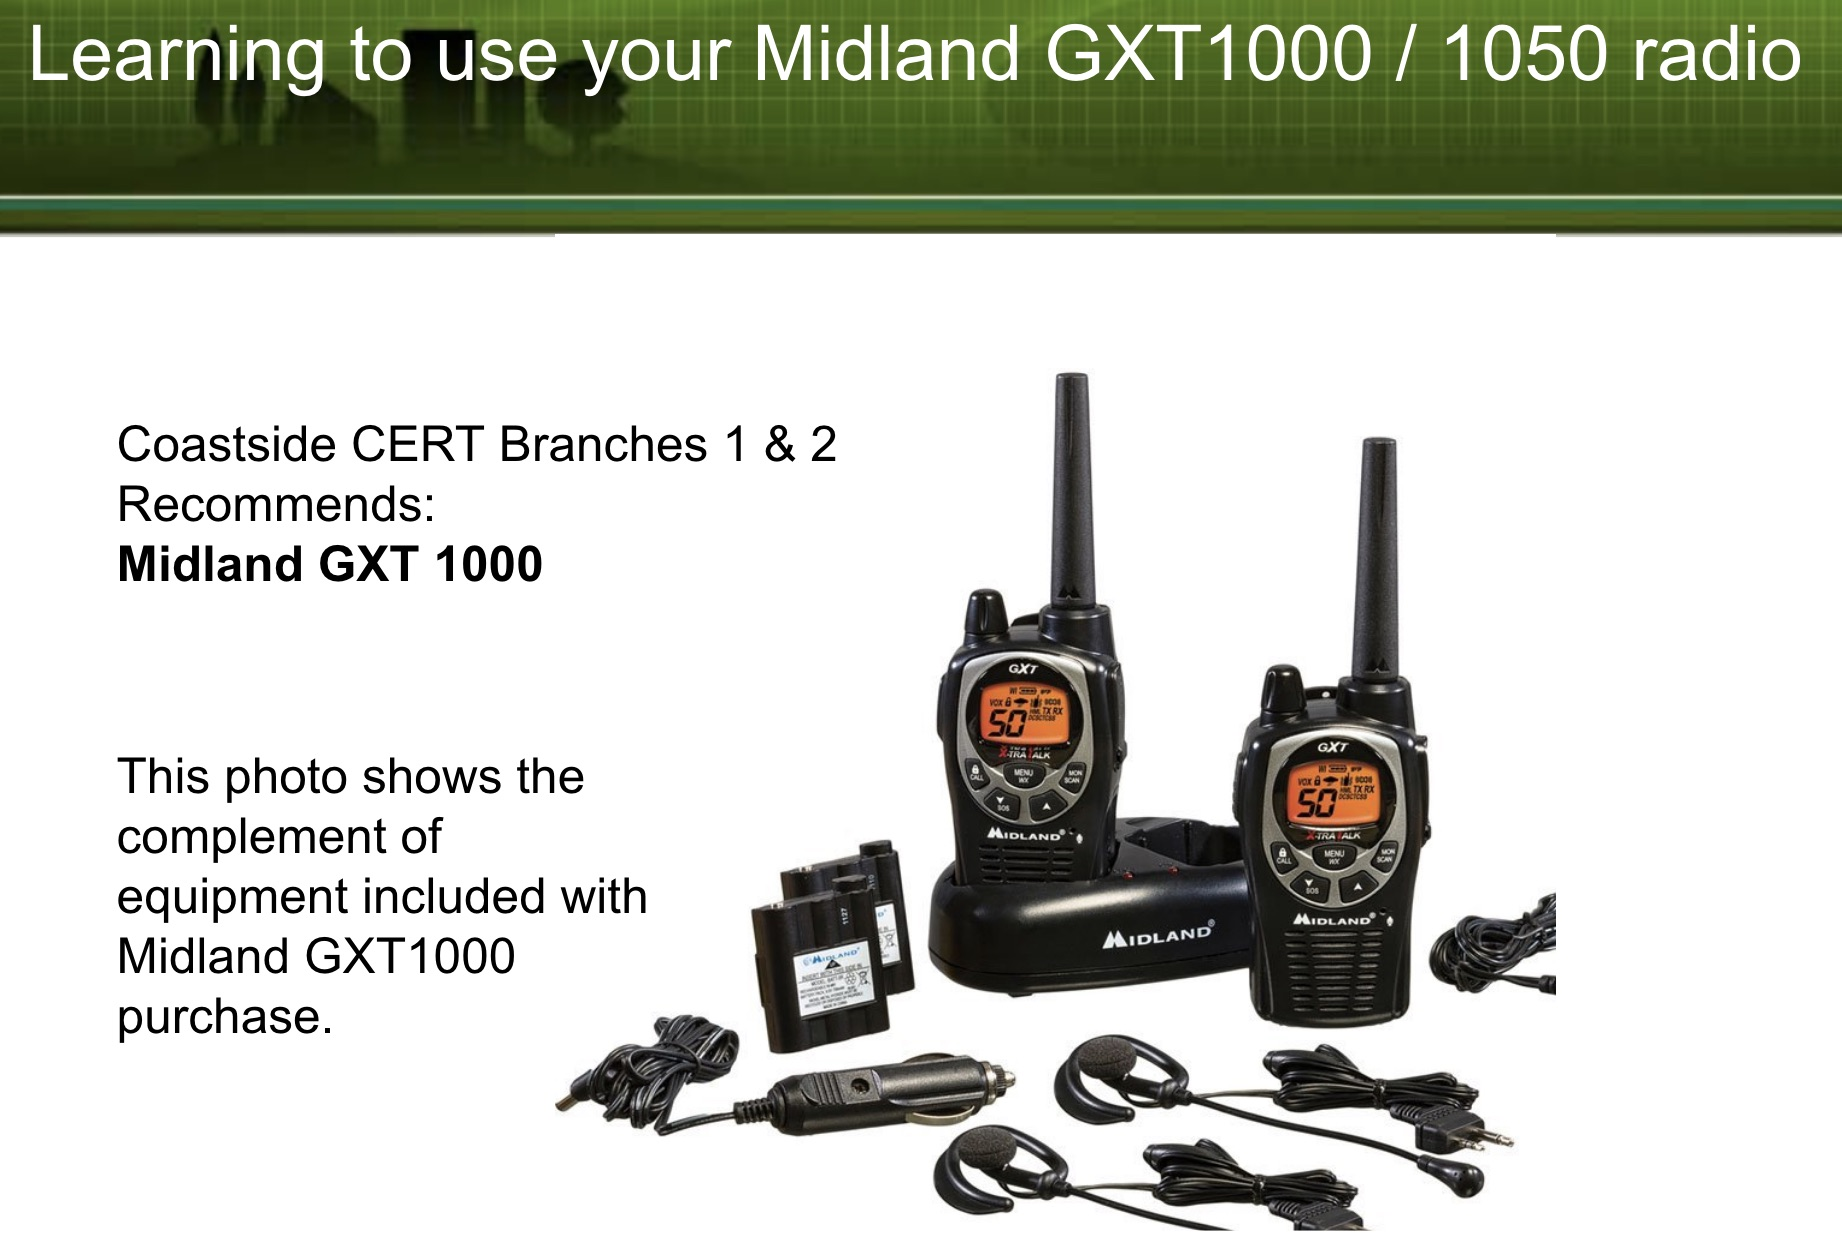 FRS/GMRS Radio (WalkieTalkies) Basic Training ~ Learn How to